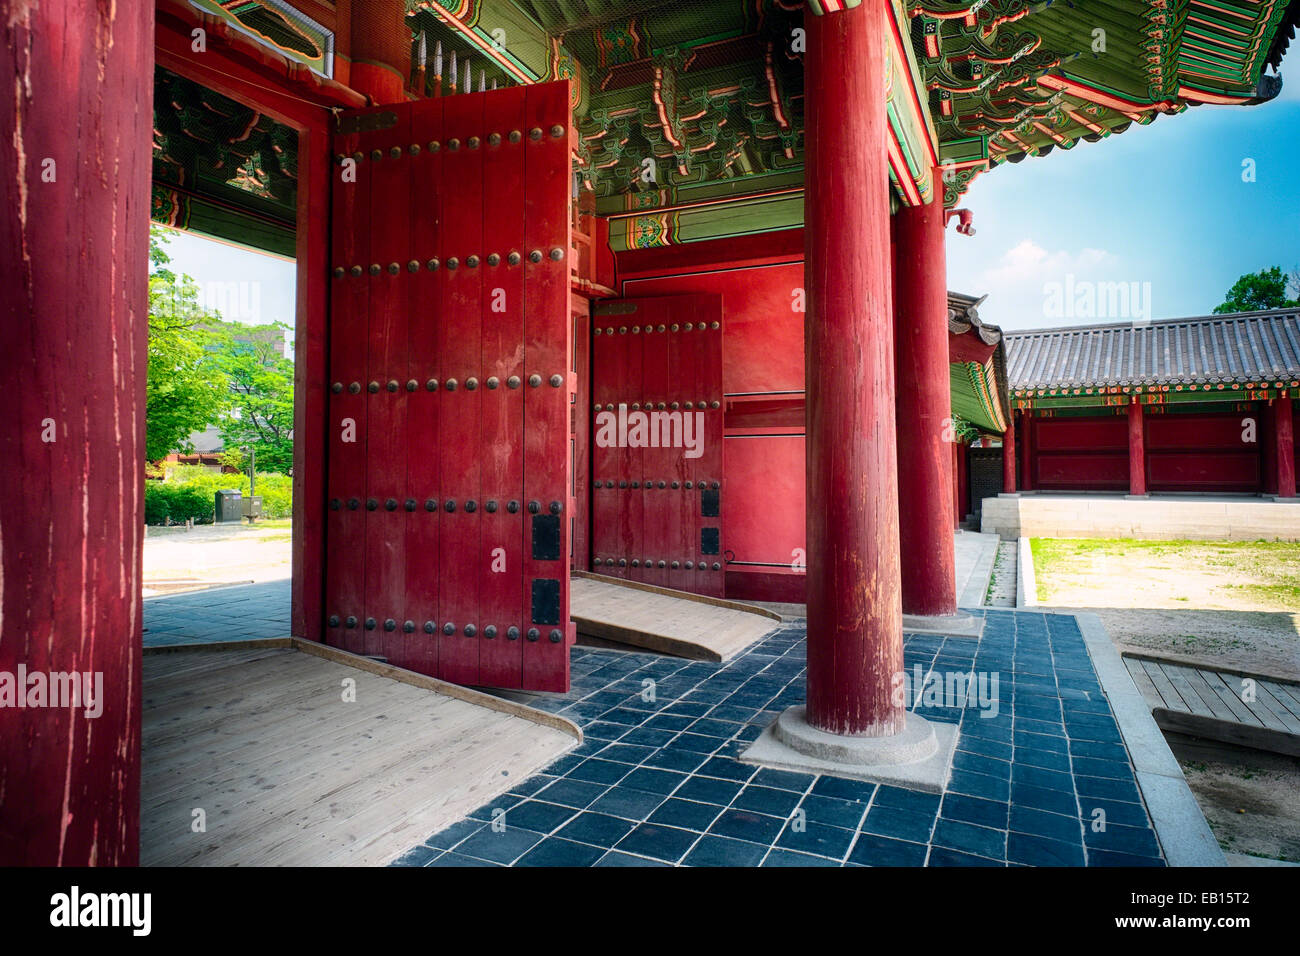 Inner Gates of the Changdeok Palace, Seoul, South Korea - Stock Image